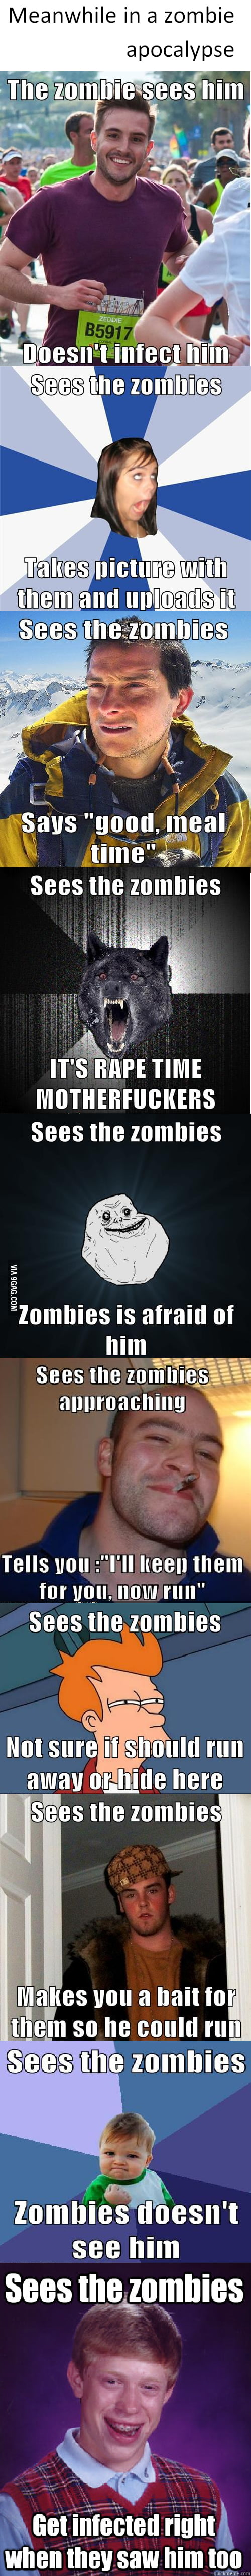 Memes in a zombie apocalypse